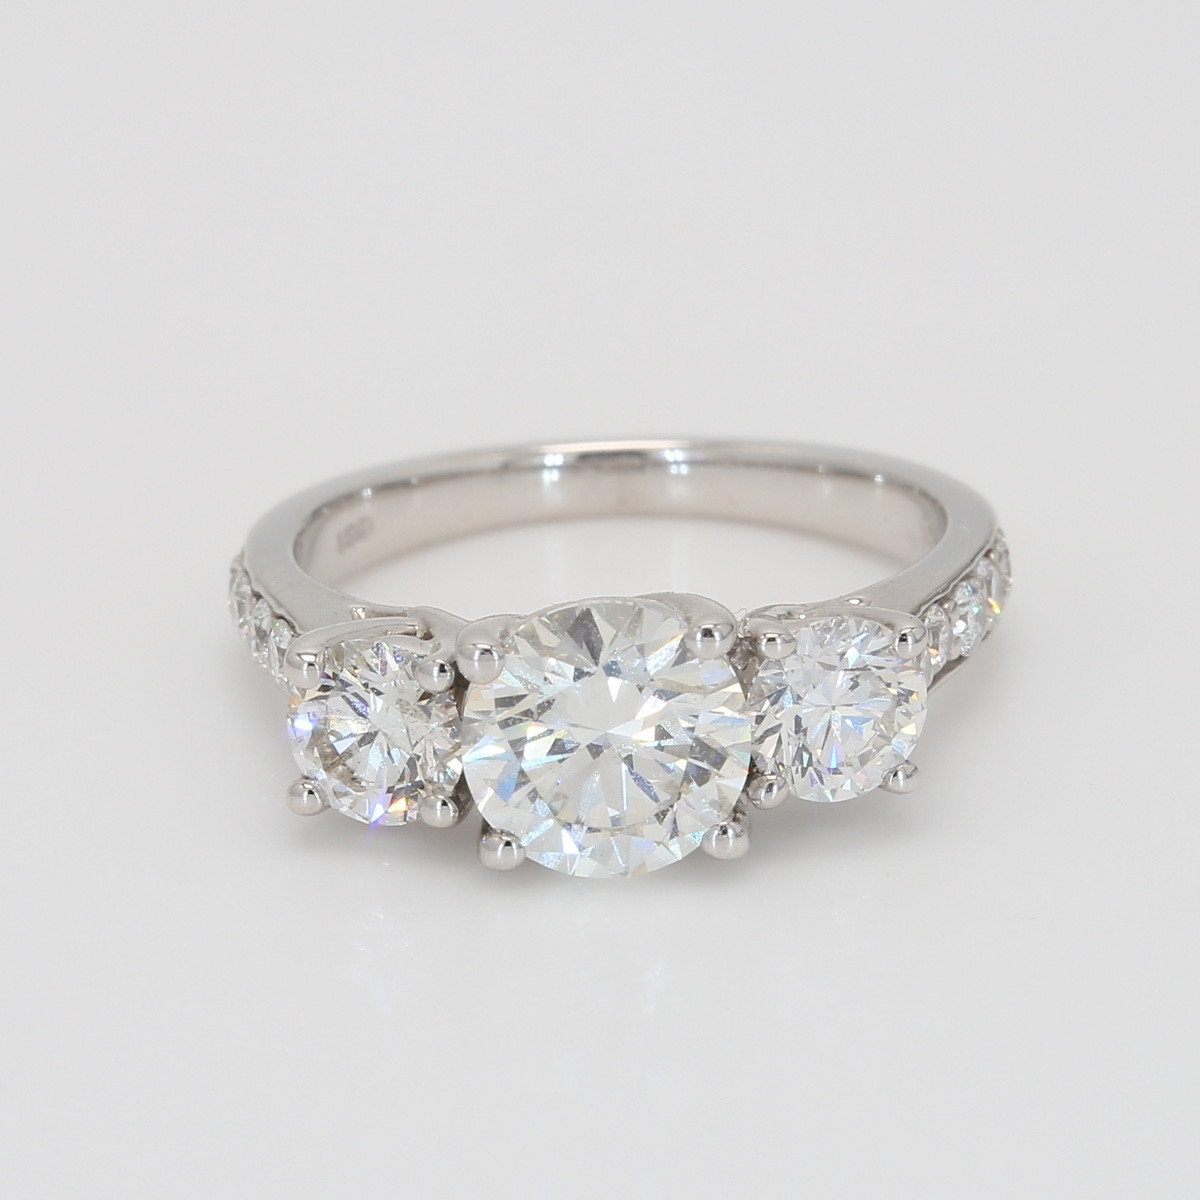 3 Stone Diamond Engagement Ring set in White Gold